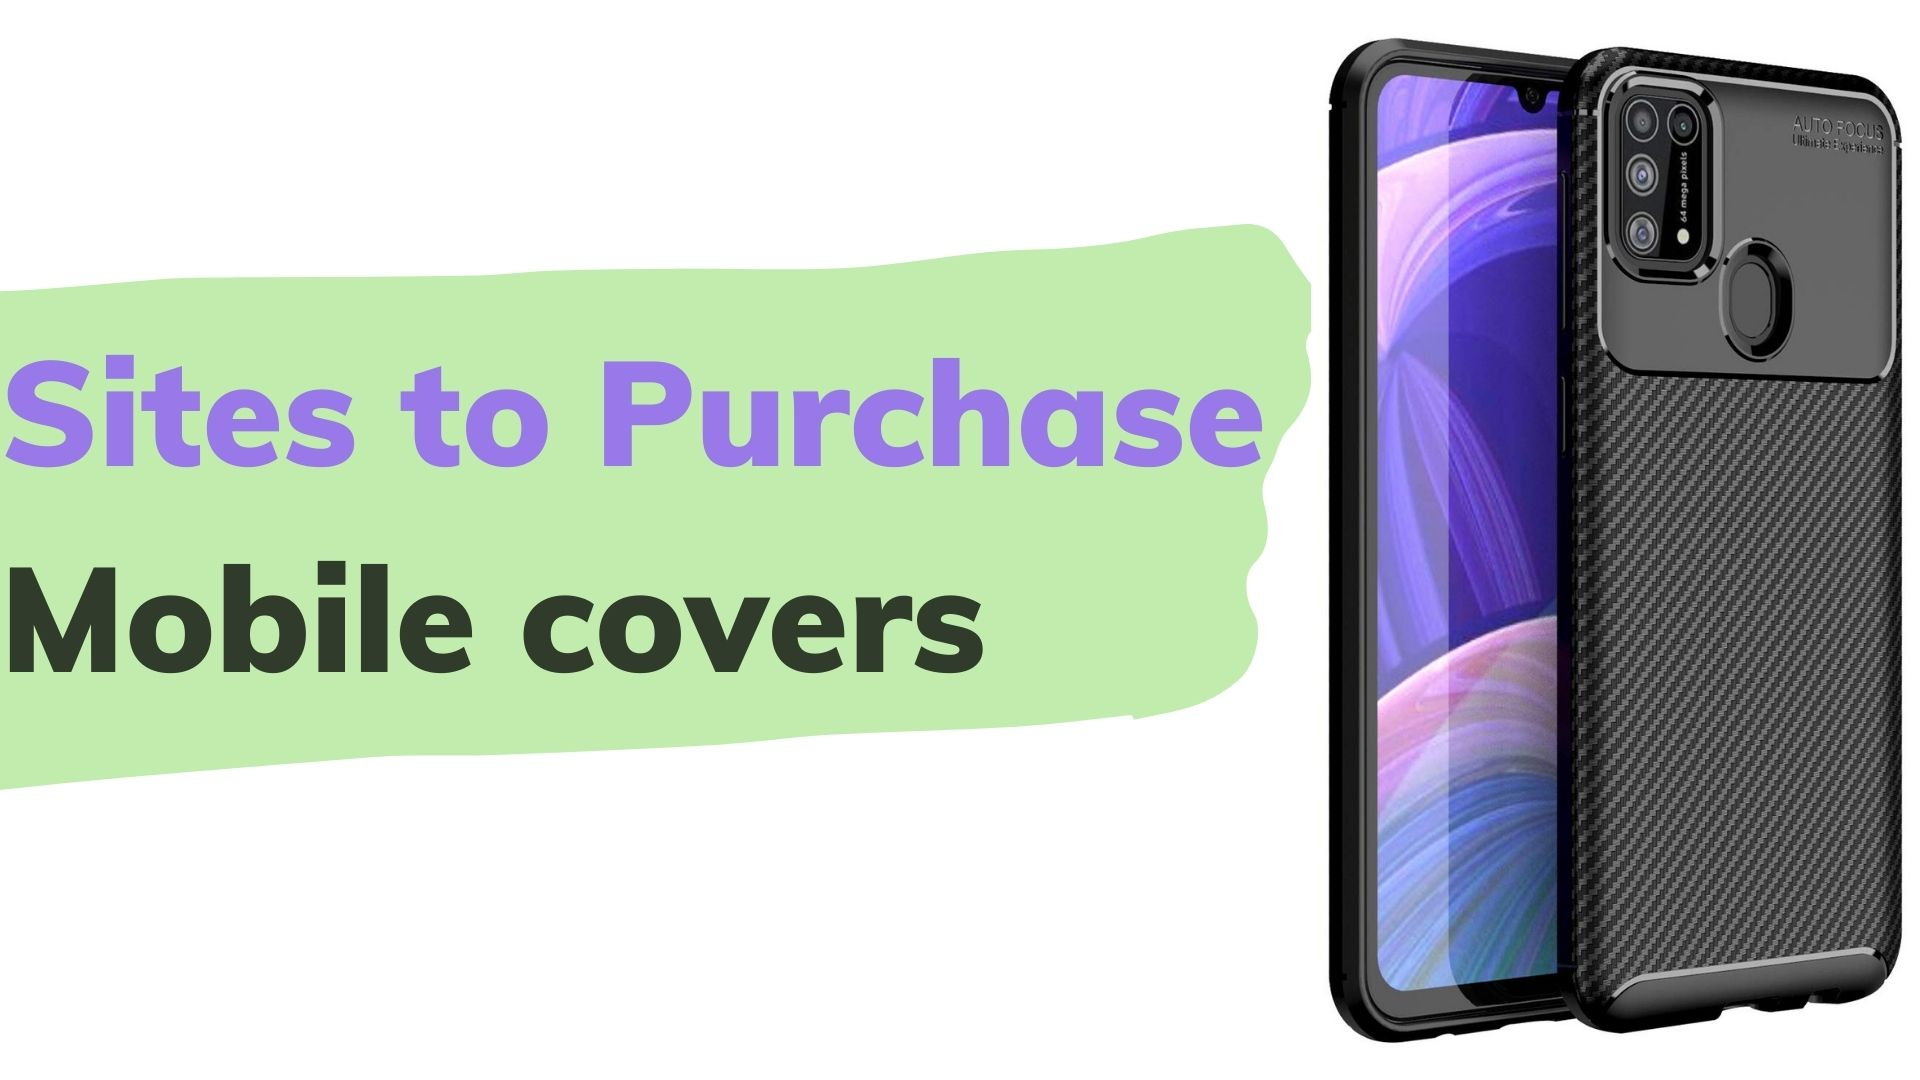 Sites to Purchase Mobile covers